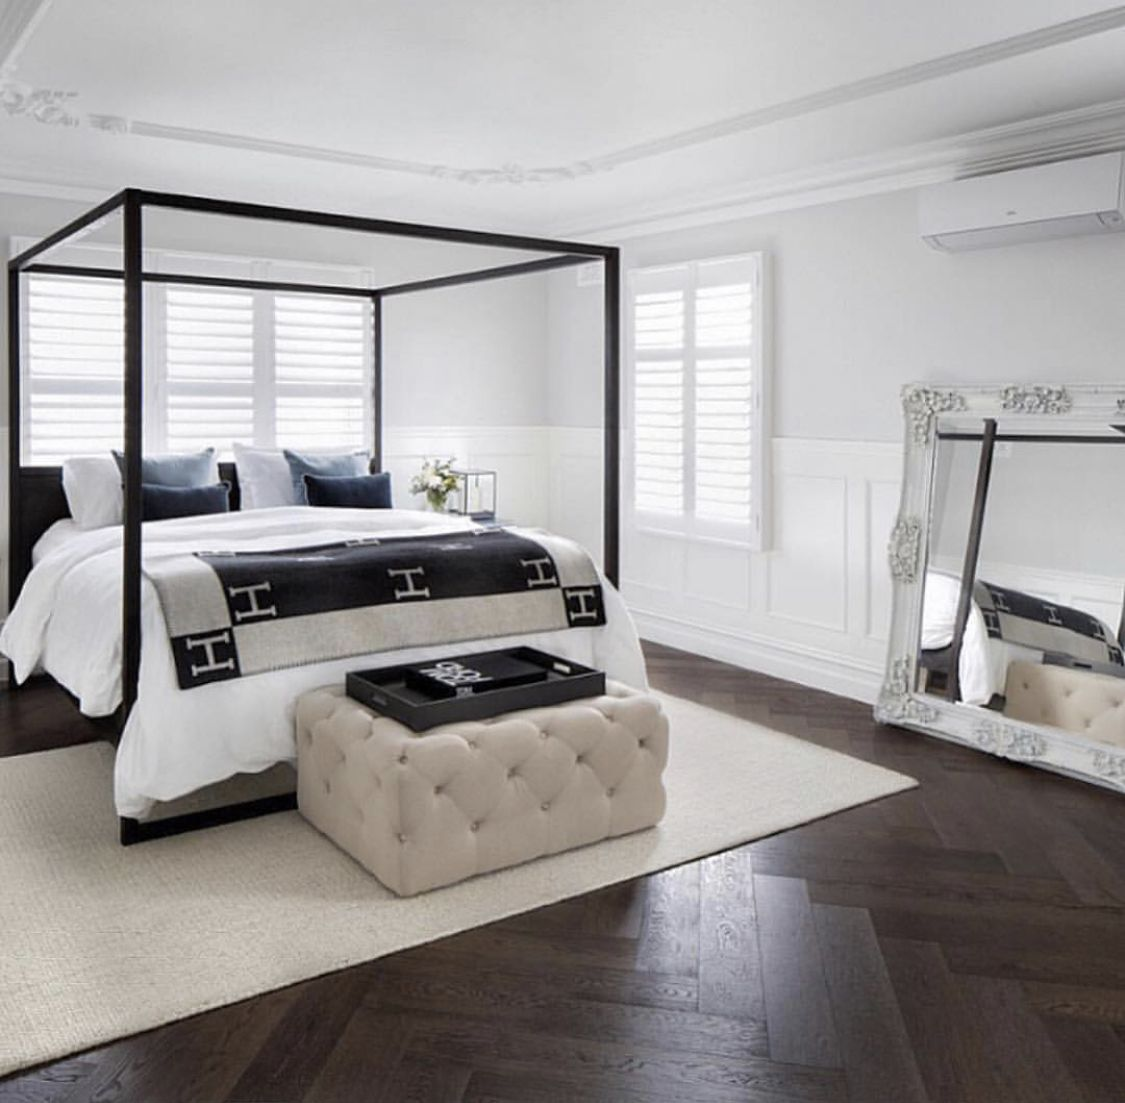 Hamptons Inspired Luxury Home Master Bedroom Robeson: Pin By Mish Allen On DREAM HOUSE